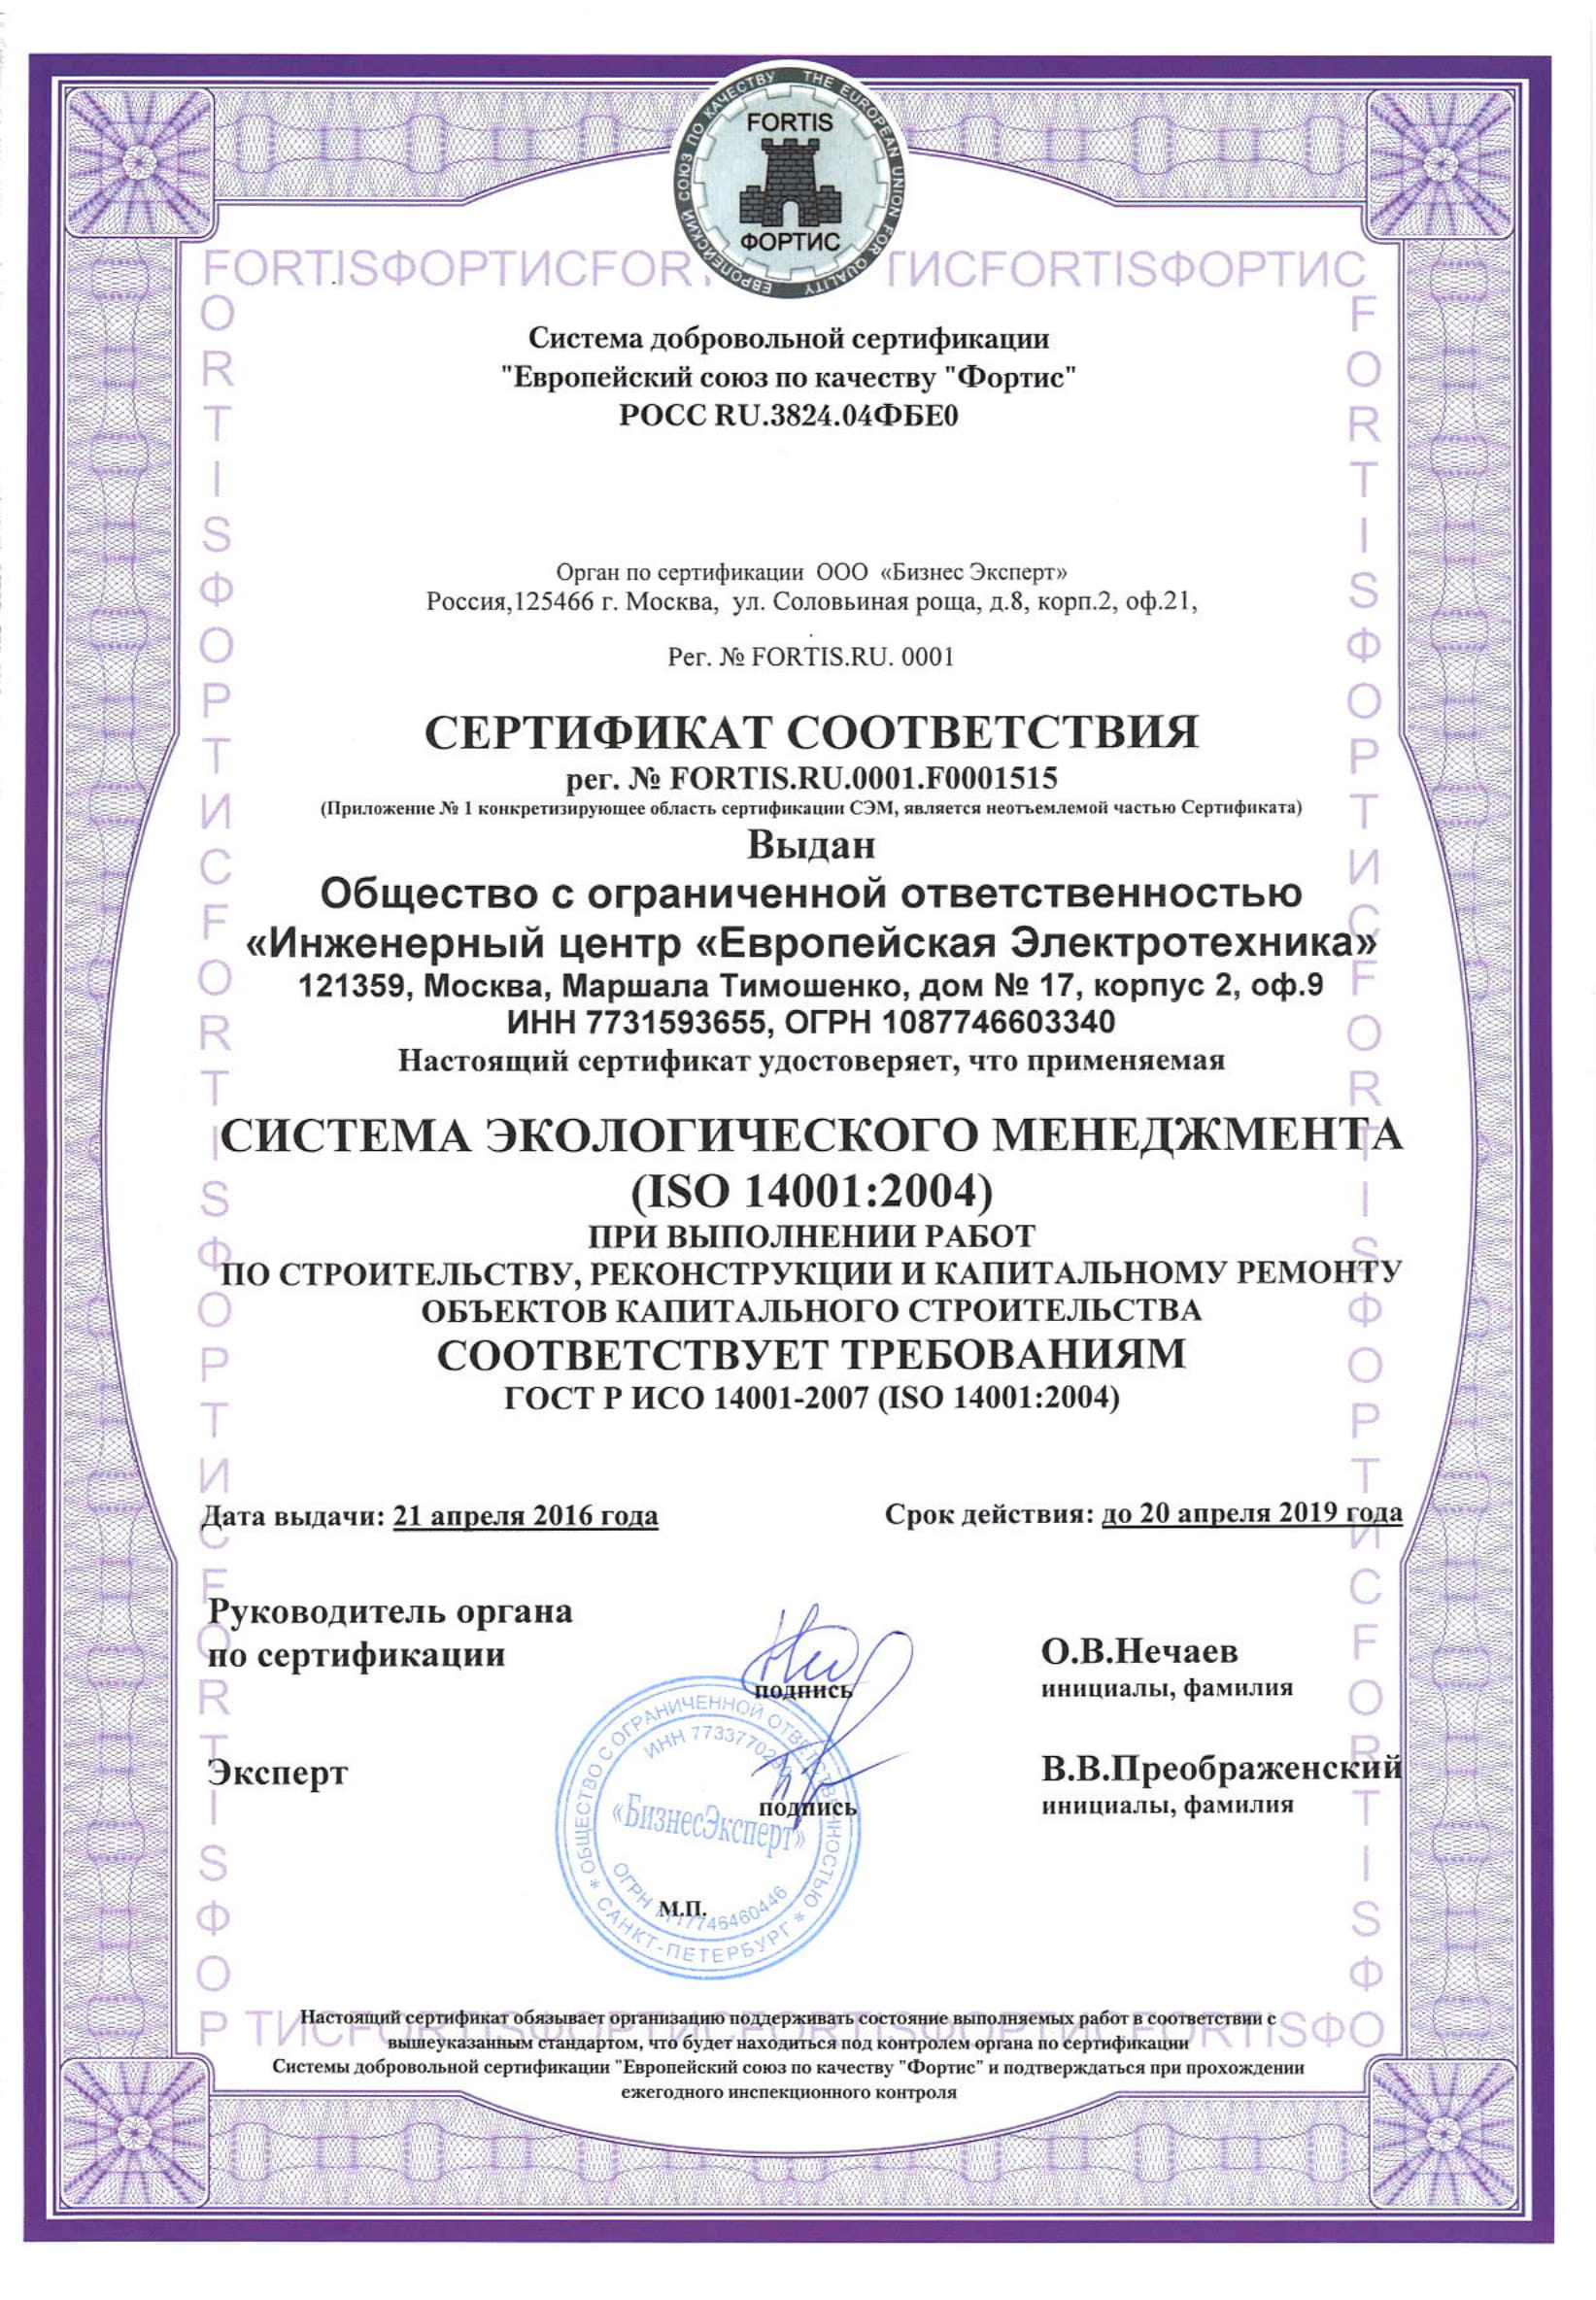 Certificate of Conformity to the Requirements of GOST R ISO (Environmental Management System)